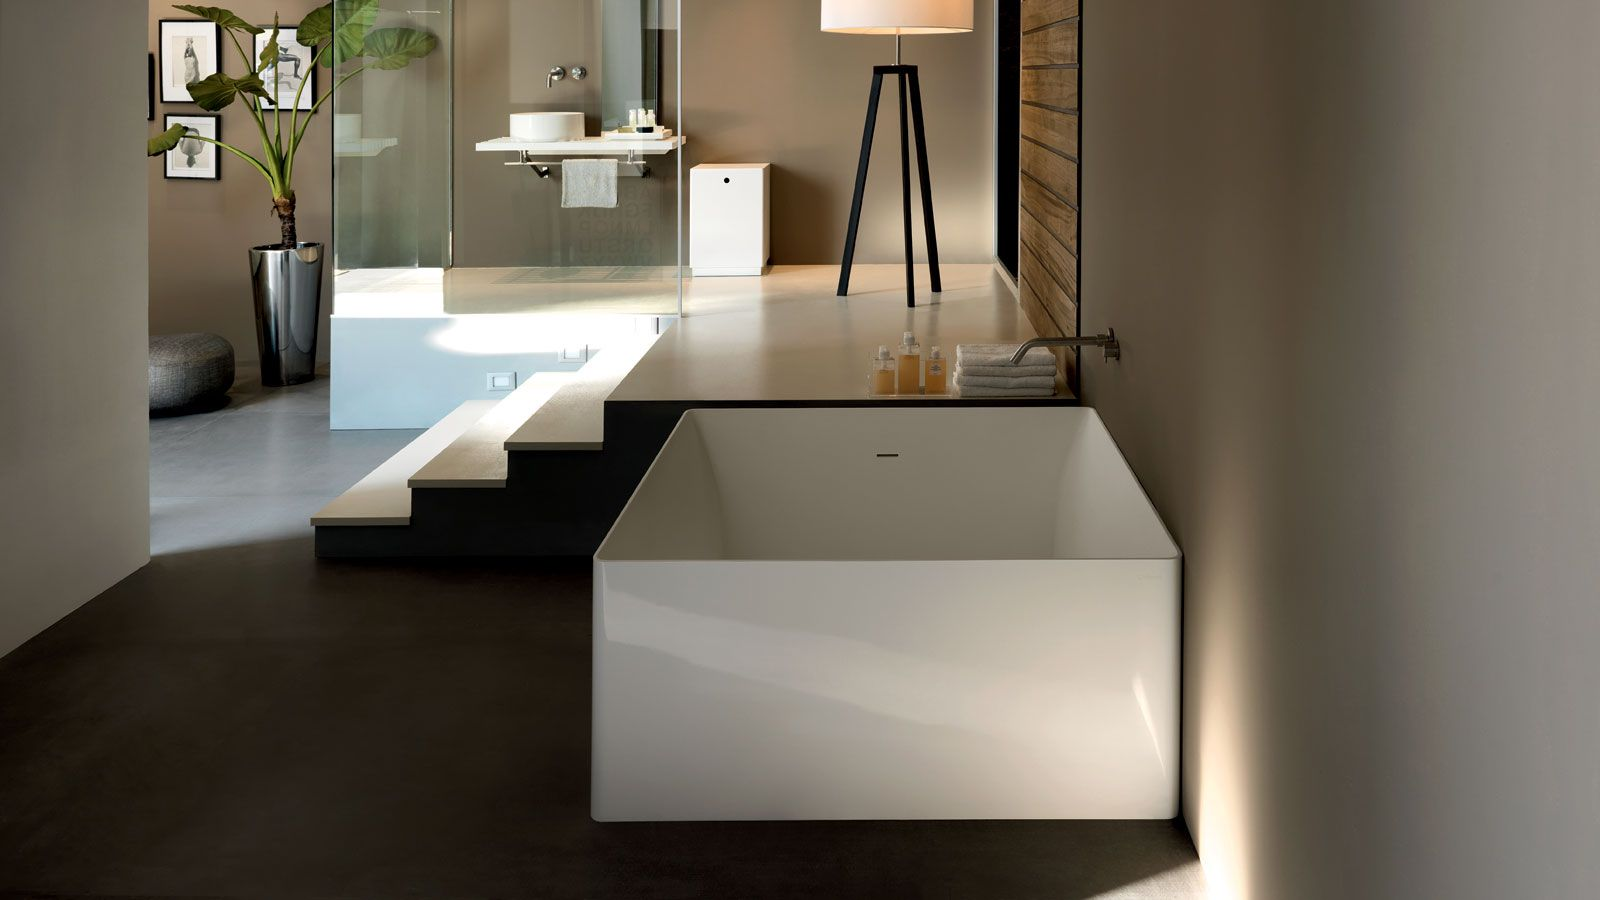 Colacril - Bathtubs Manufacturers - glass Shower Cubicle ...